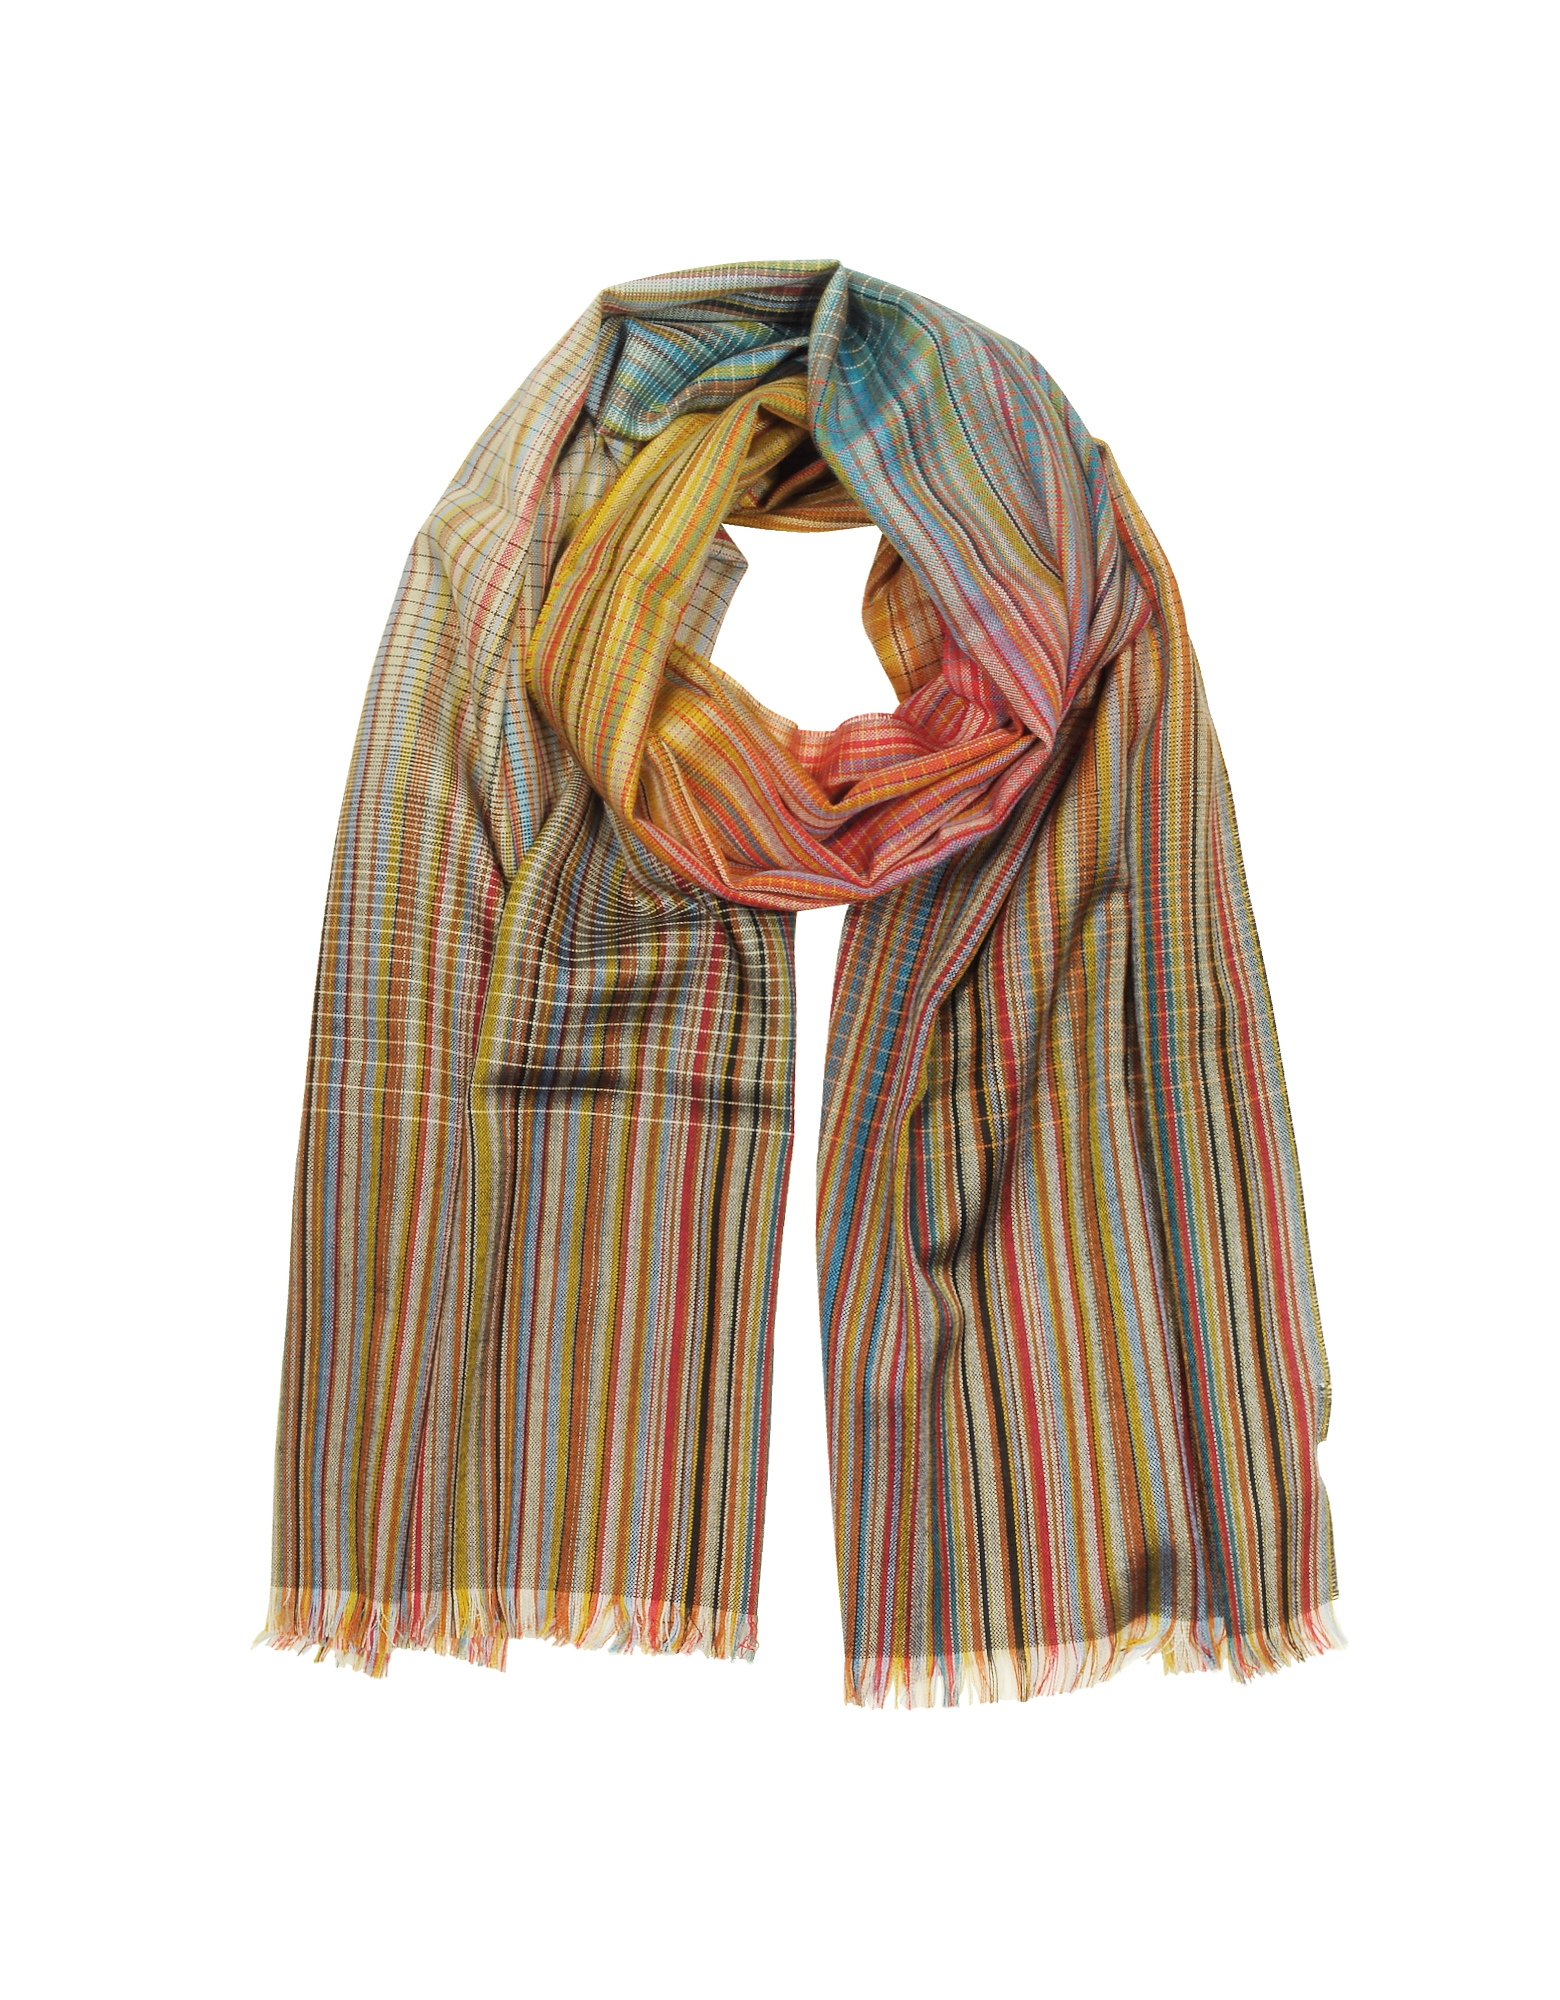 Paul Smith Men's Scarves, Signature Stripe Wool & Silk Men's Scarf